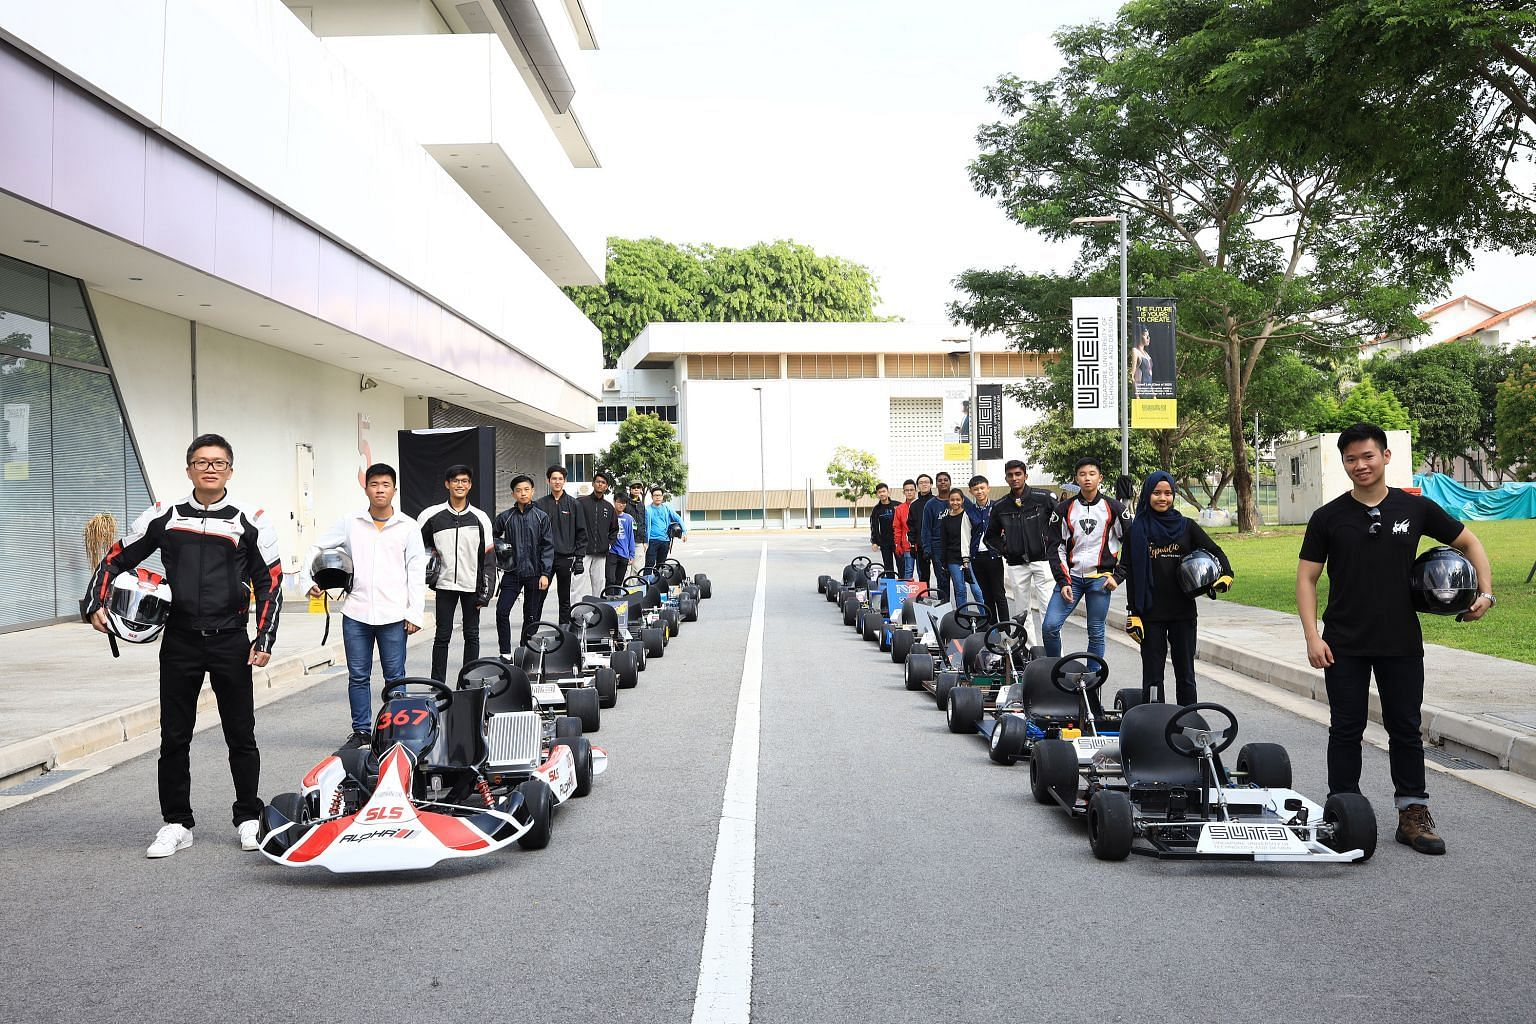 Participants in the Singapore University of Technology and Design's EV Design Challenge.